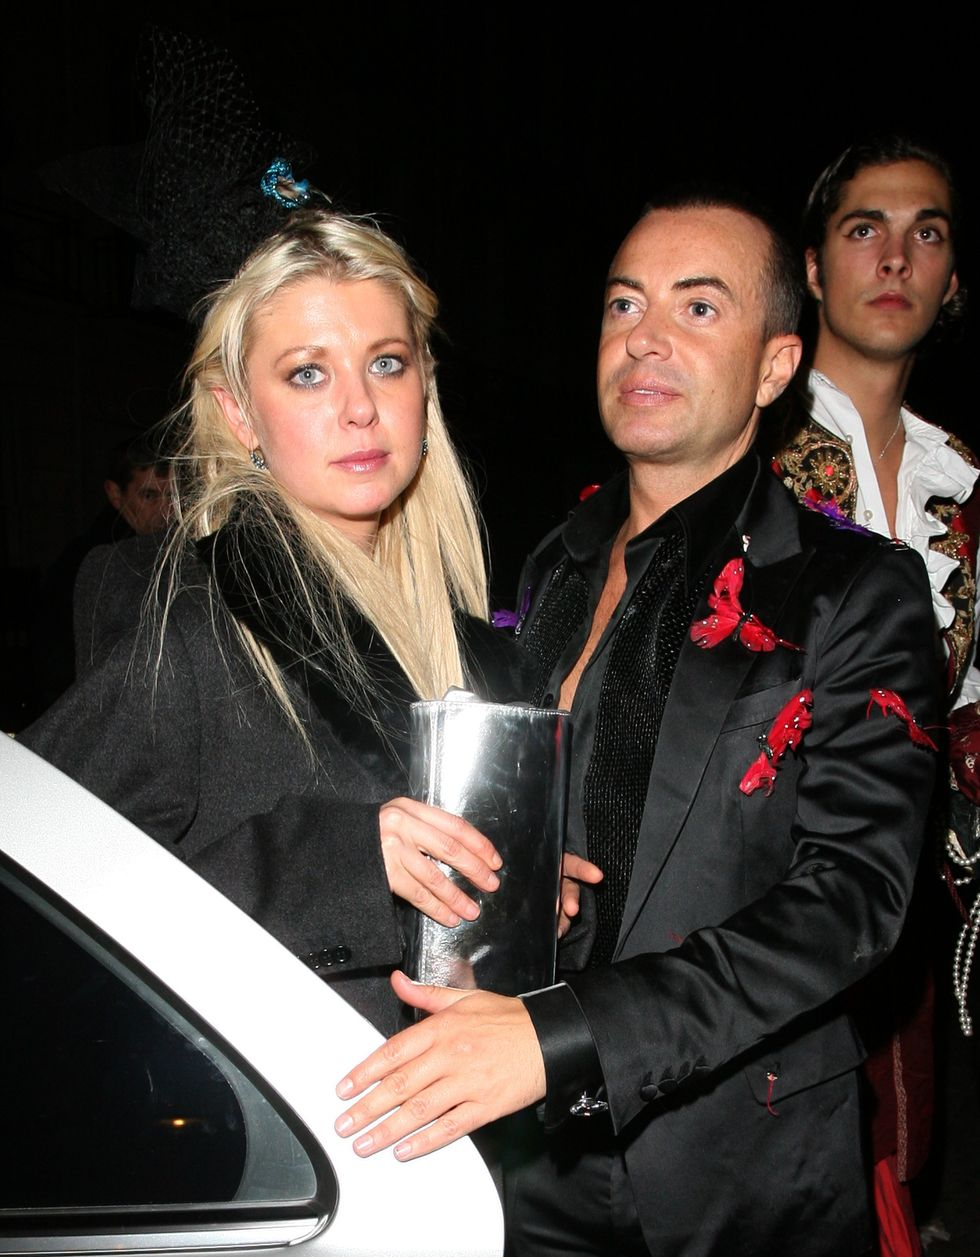 tara-reid-chinese-new-year-party-at-county-hall-in-london-01